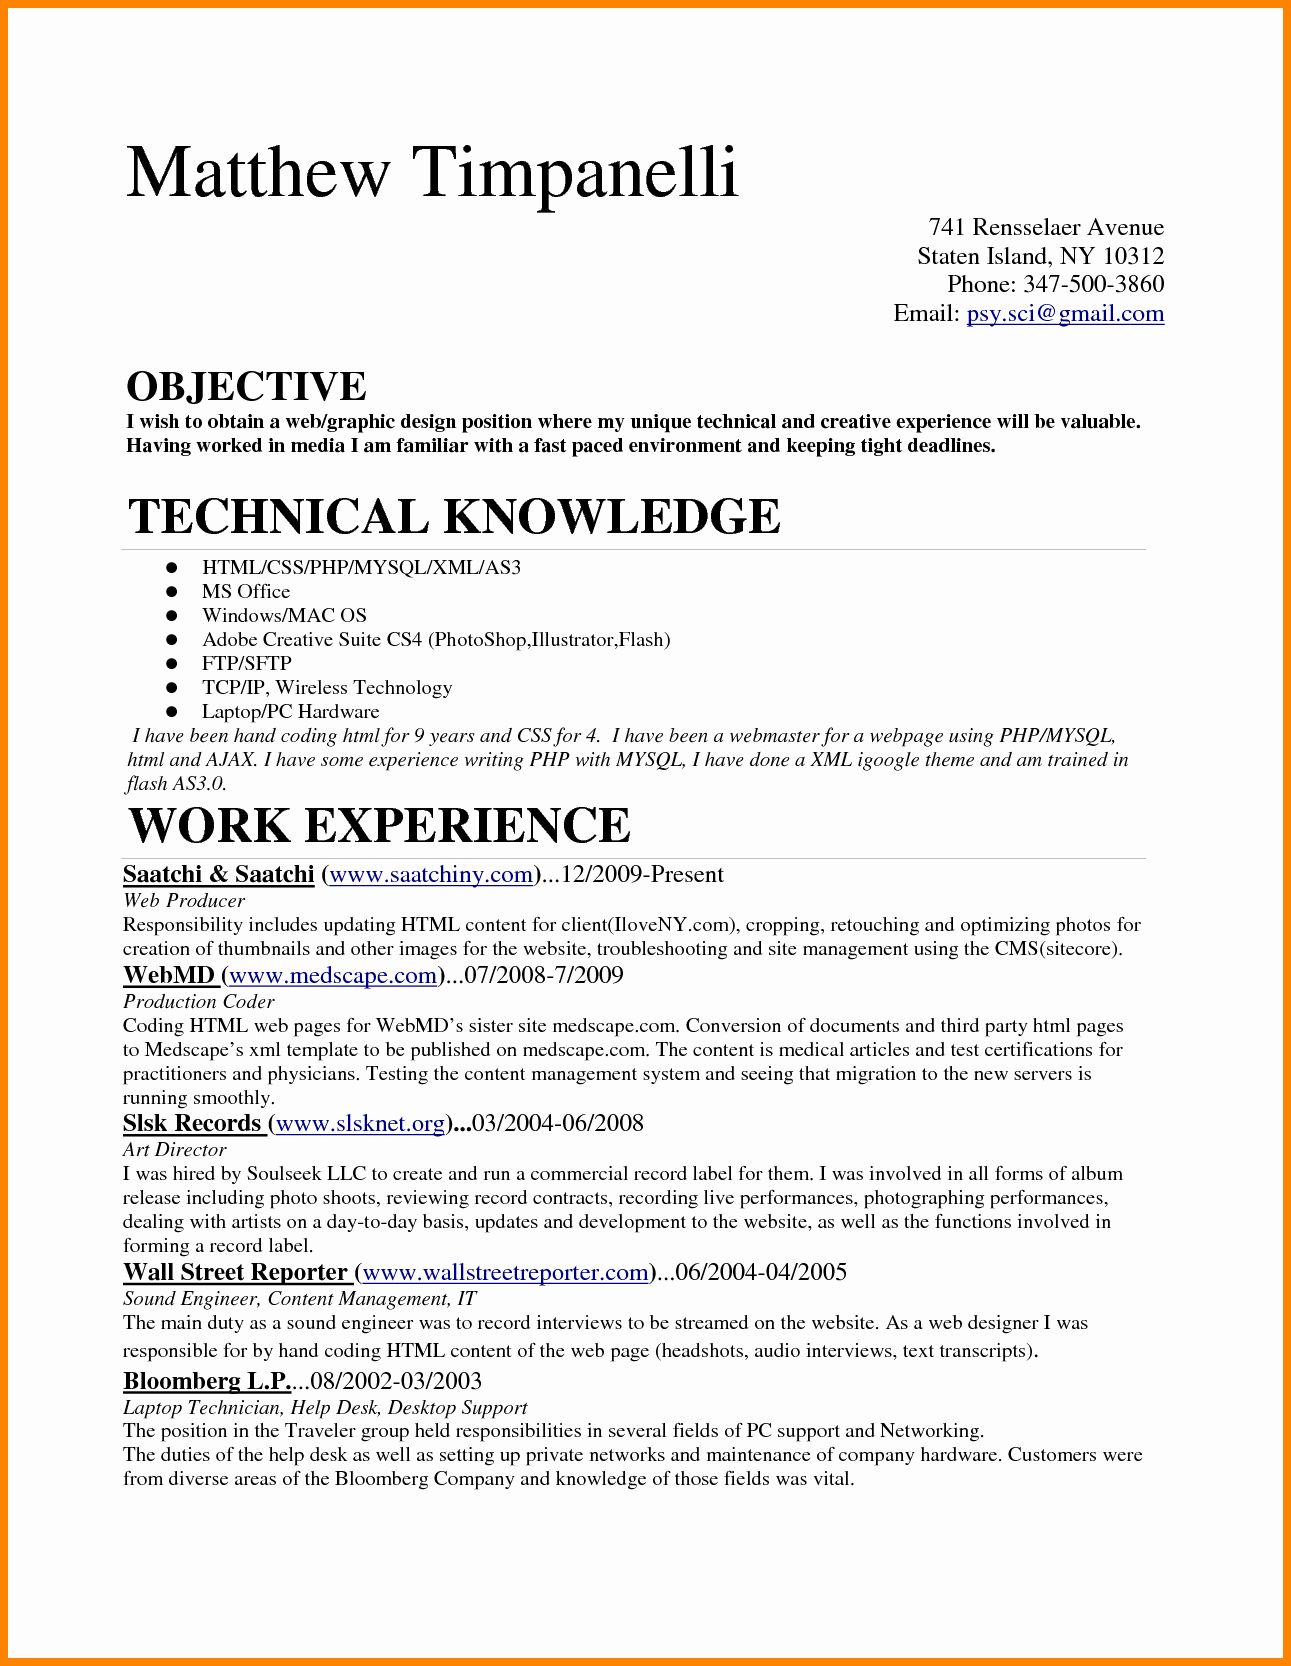 medical coding resume example luxury entry level billing coder jobs examples objective Resume Objective For Medical Coding Resume